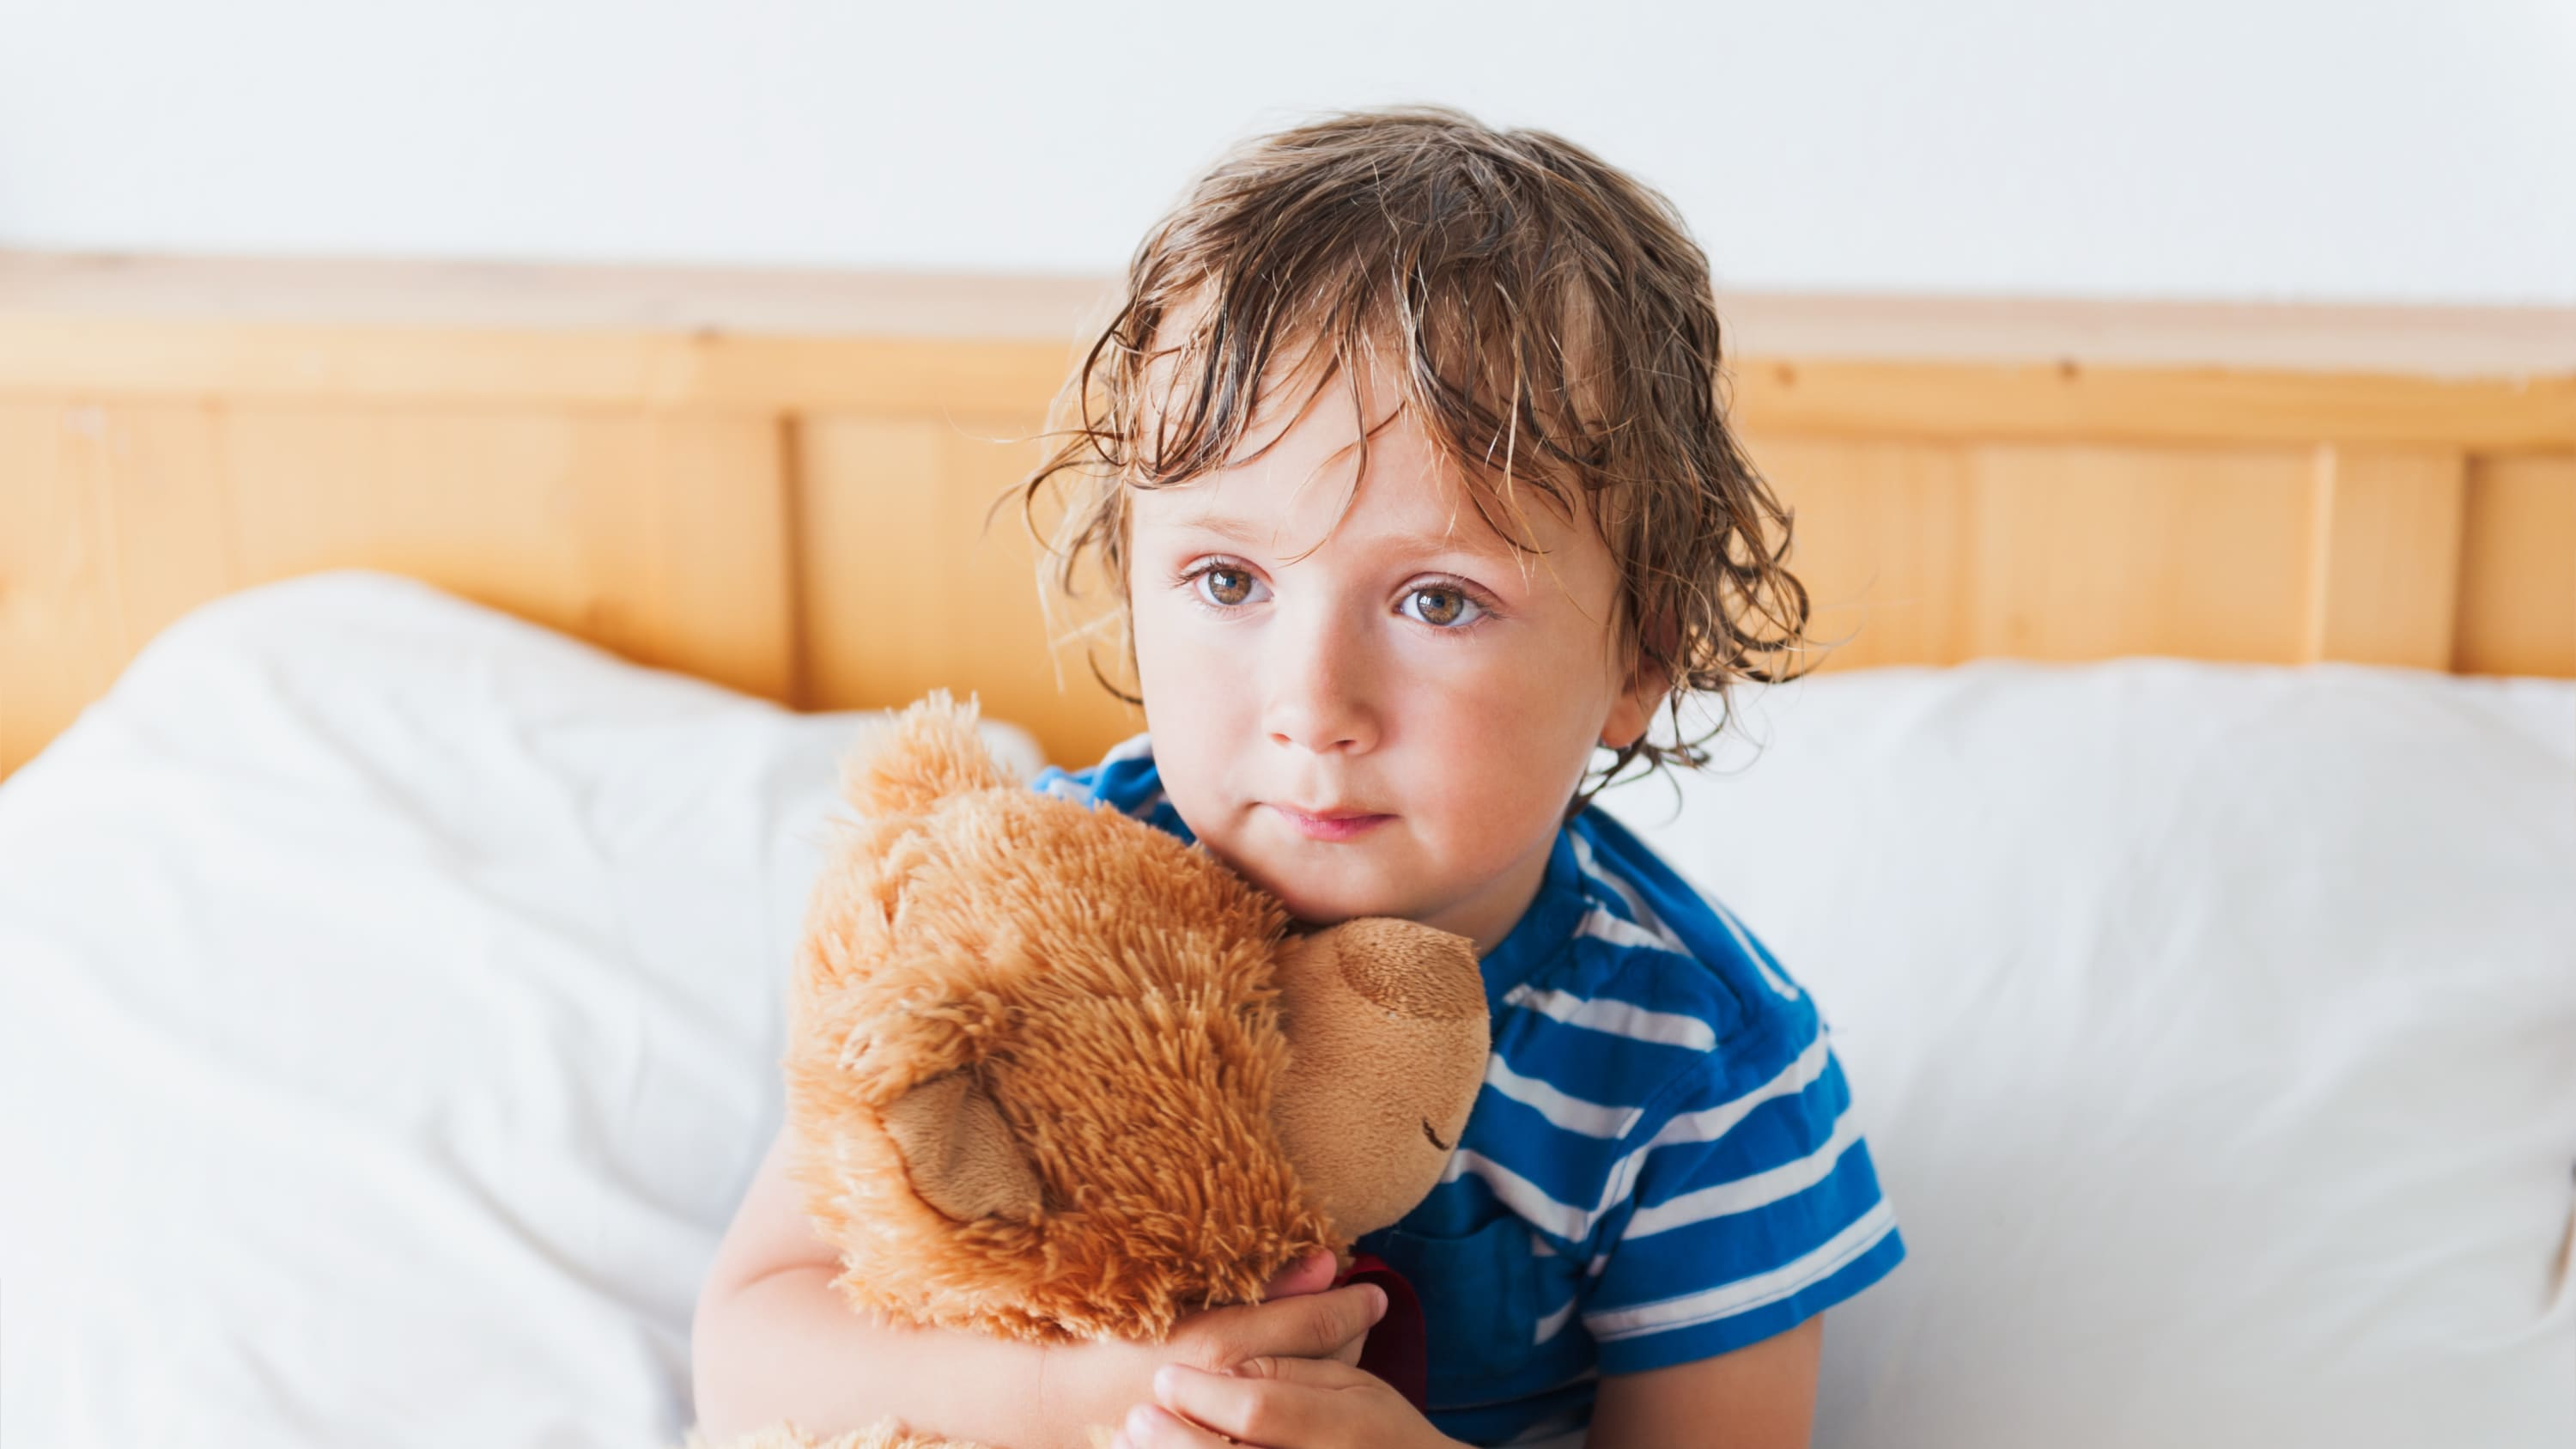 A child who may need care from a pediatric urology specialist.